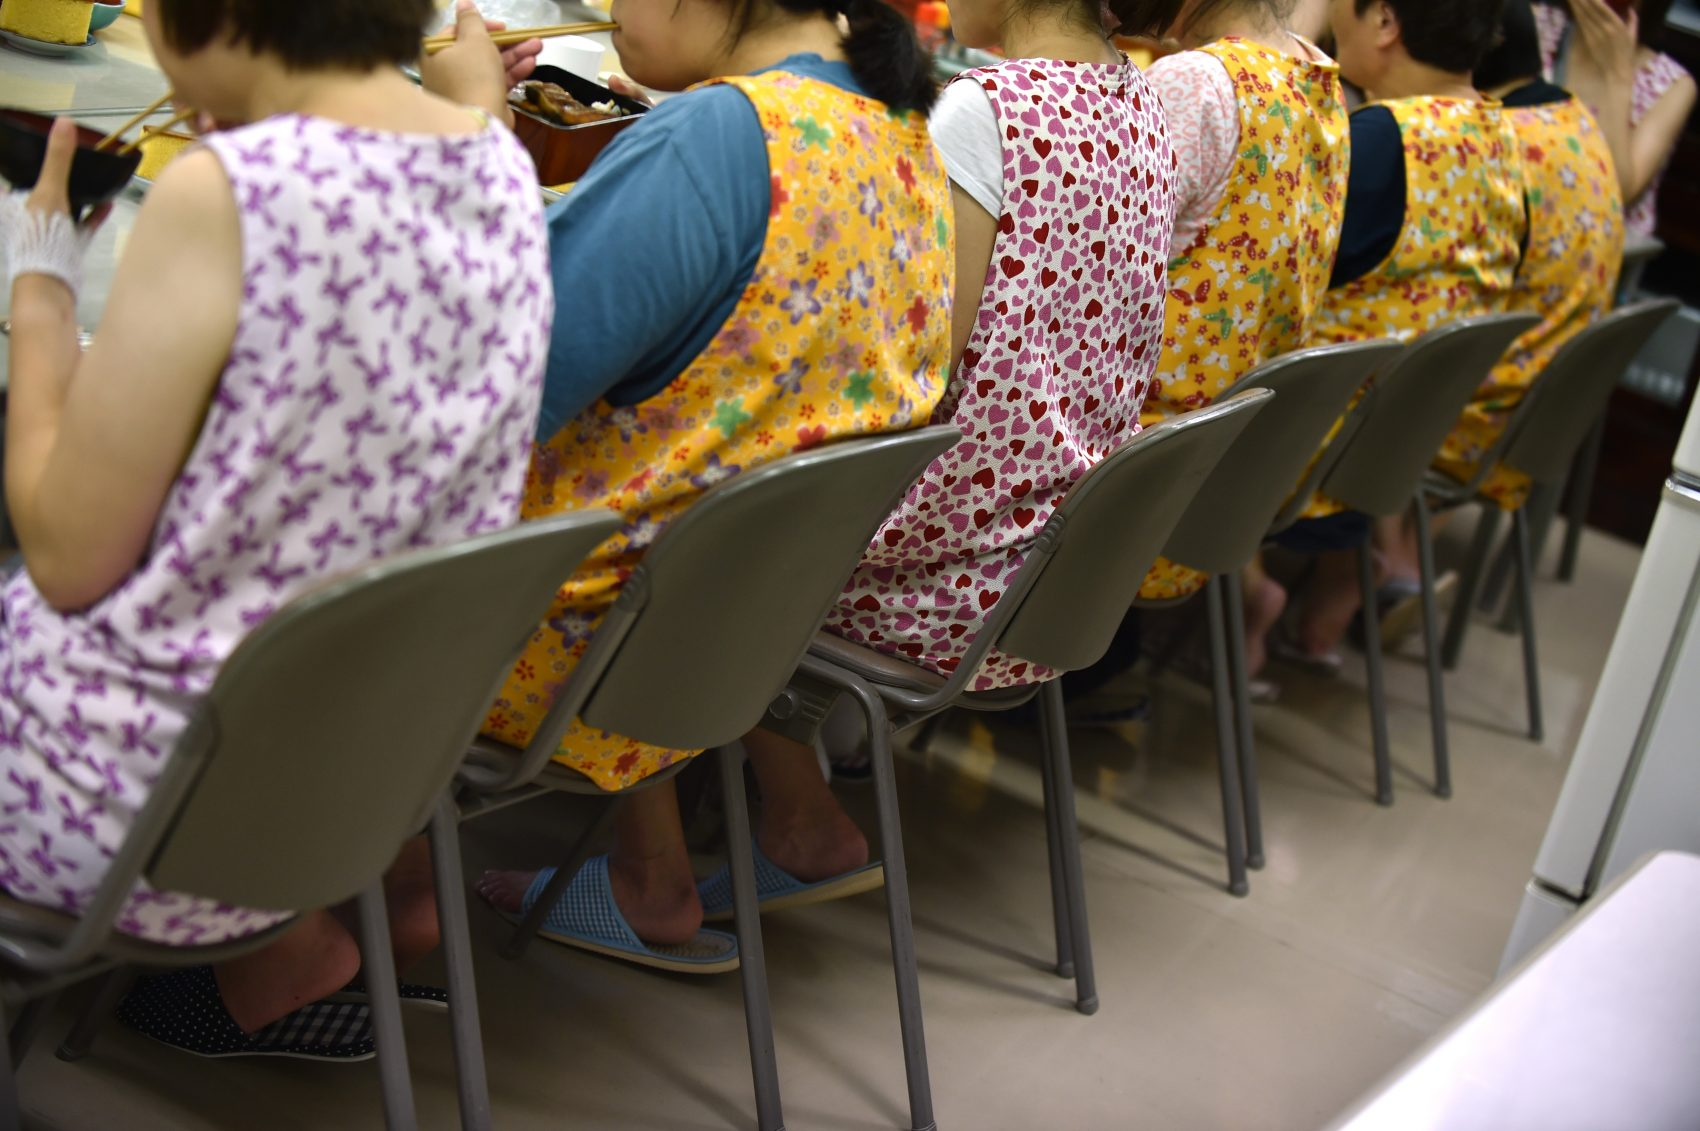 This picture taken on July 24, 2015 shows women having a meal together at a rehabilitation facility to support reintegration for former prisoners in Tokyo. For Japan's increasing cohort of elderly prison inmates, the prospect of a life of freedom upon release is fraught with unease. (Kazuhiro Nogi/AFP/Getty Images)